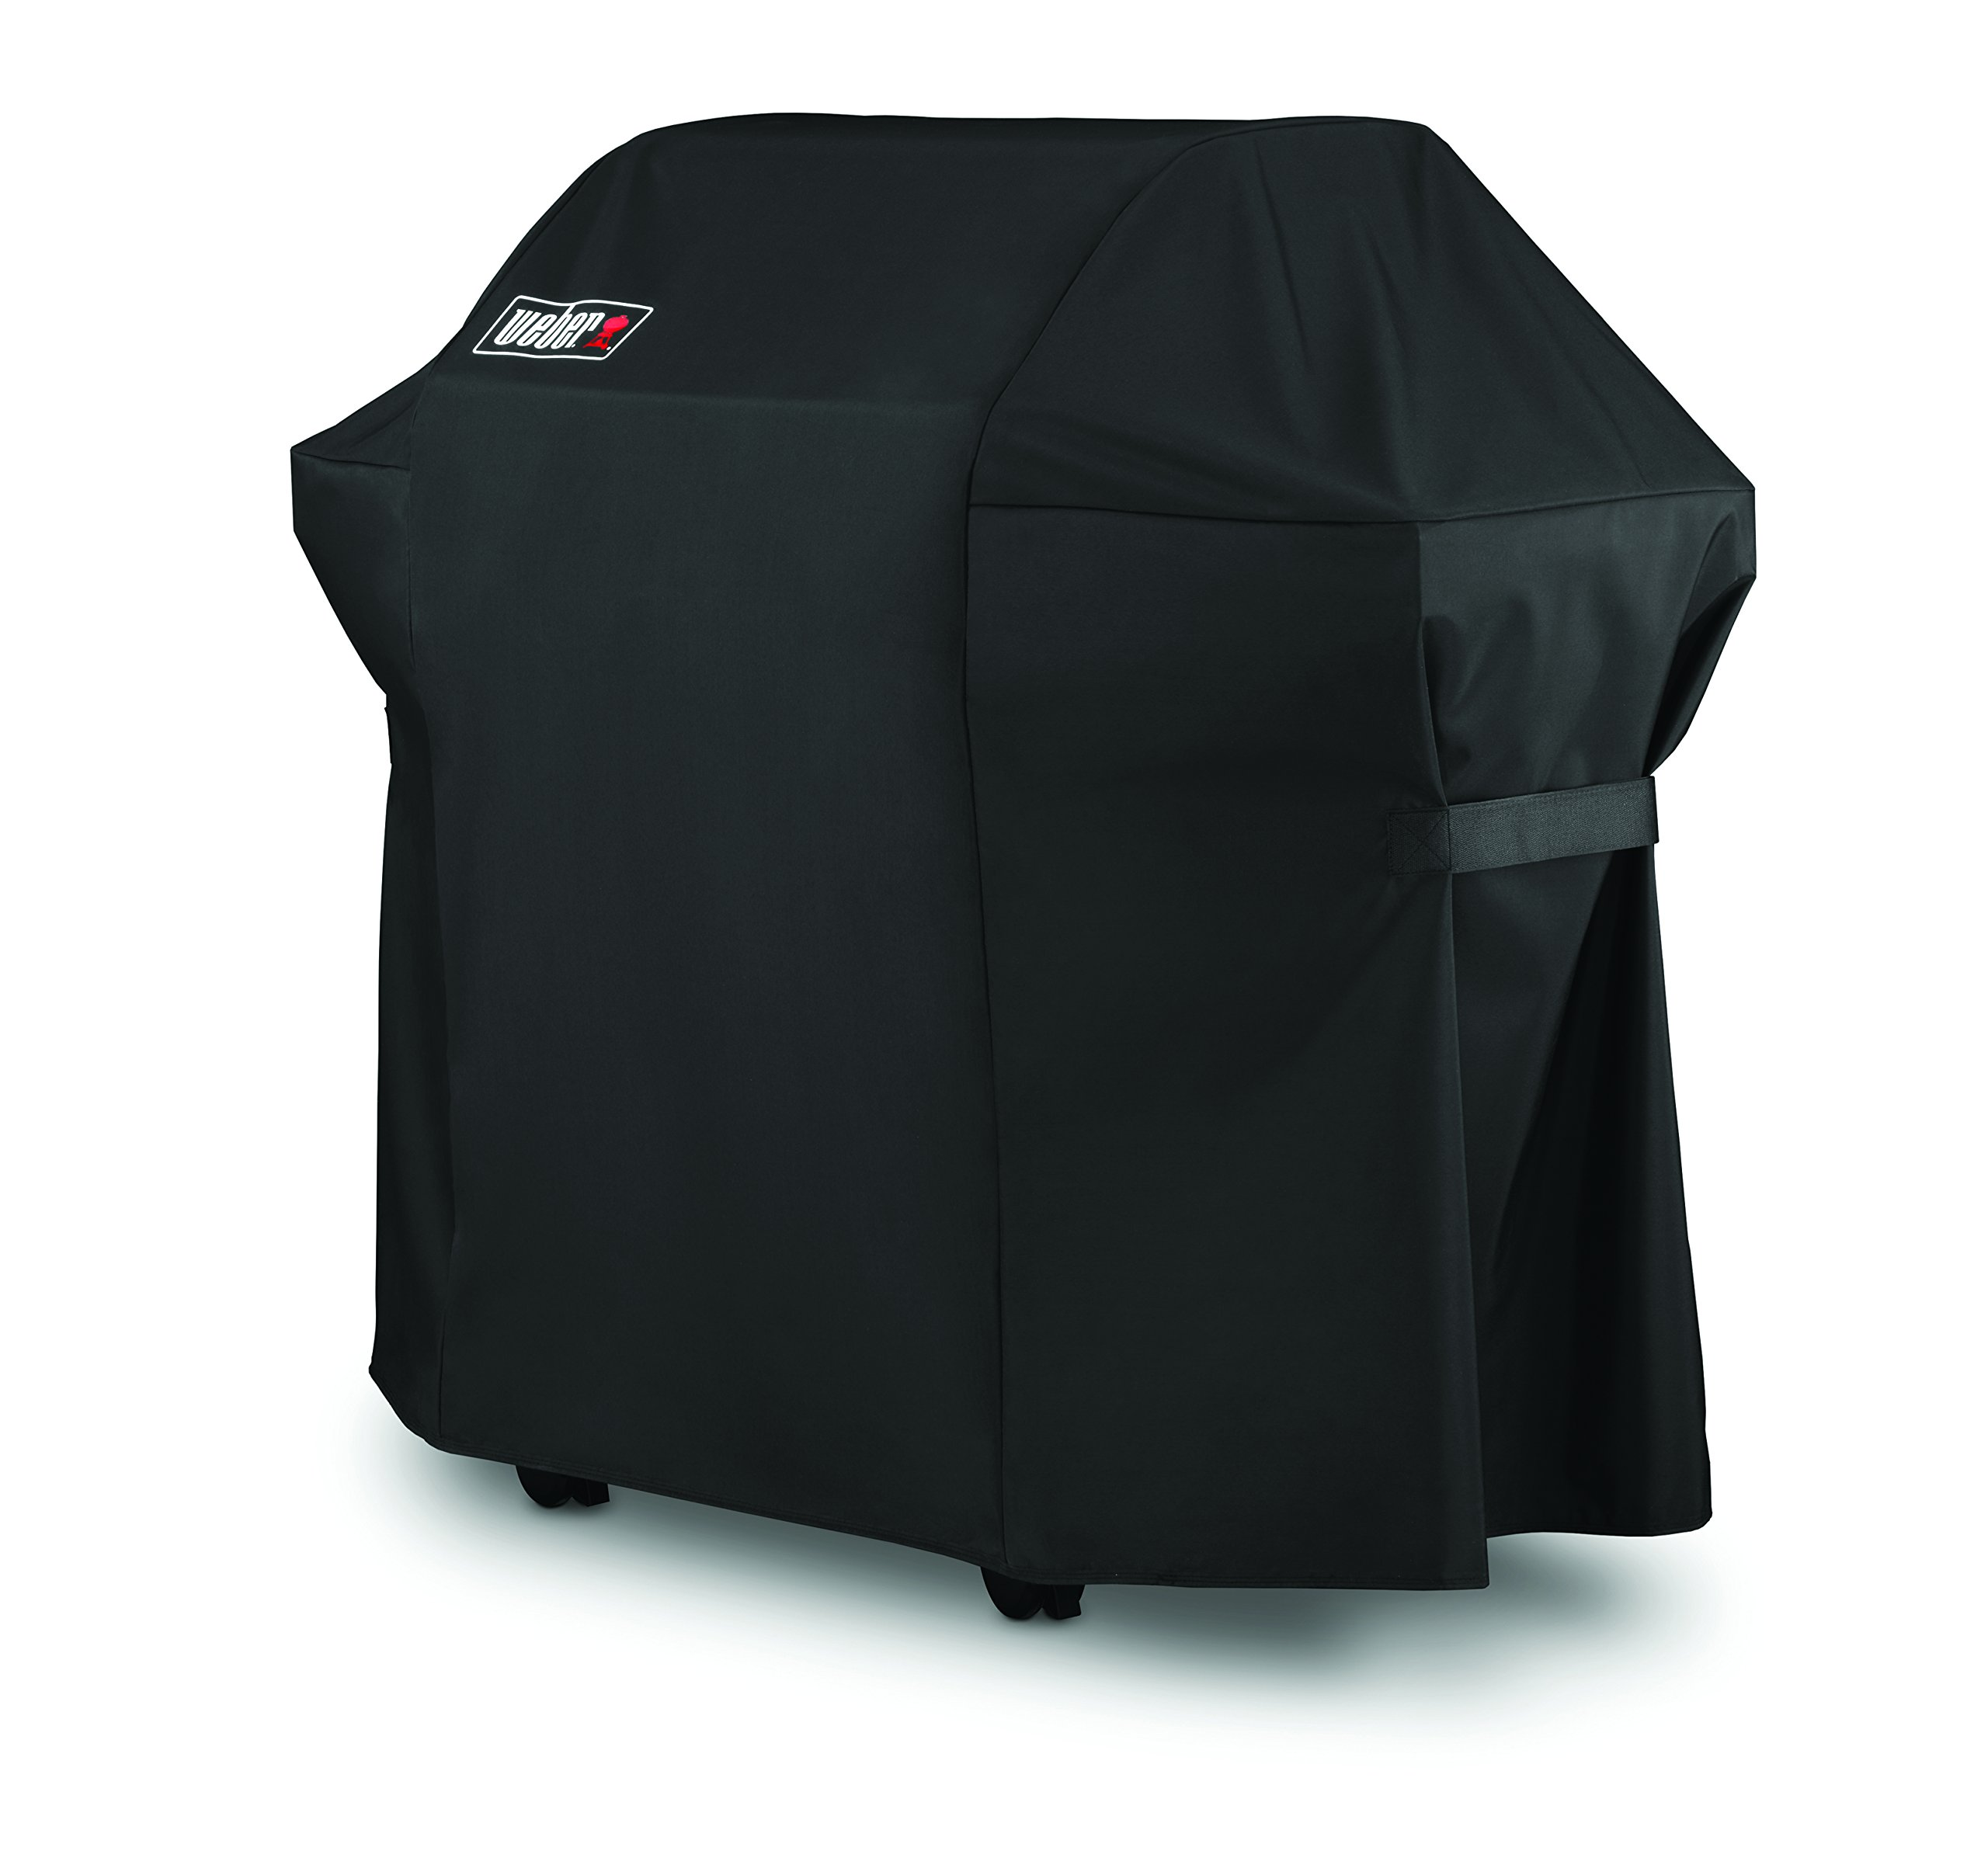 Grill Cover 7107 for Weber Genesis E and S Series Gas Grills 60 X 24 X 44inches